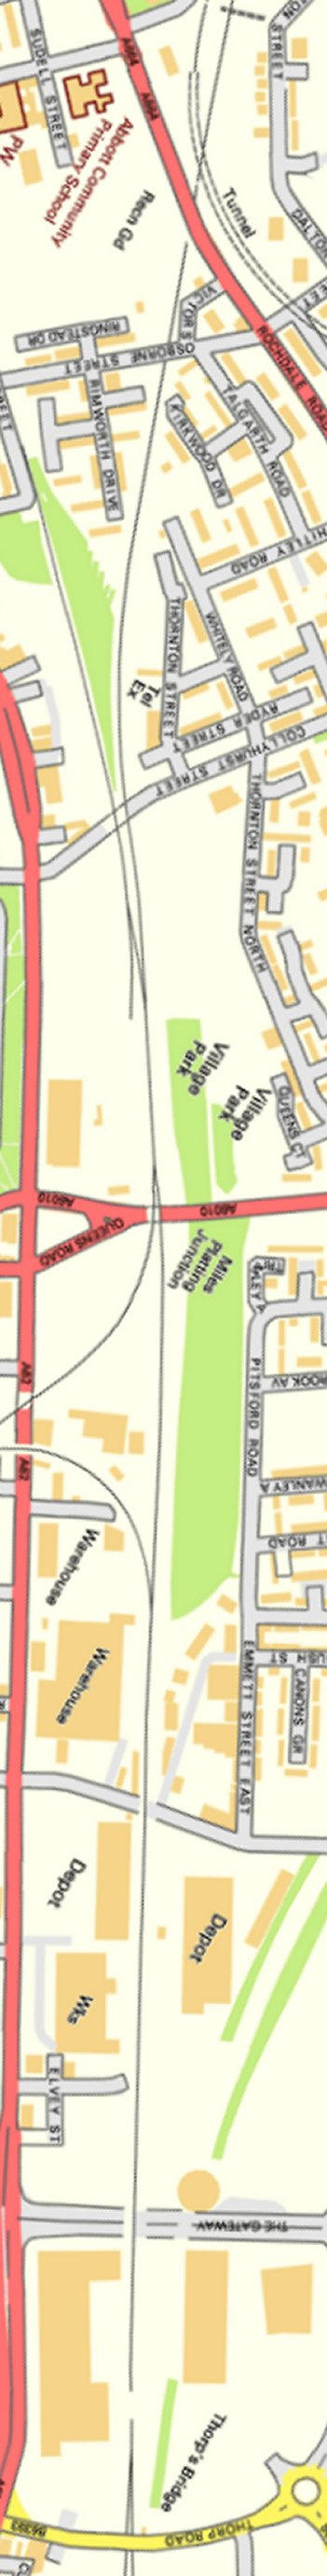 Section from Ordnance Survey OpenSource mapping 2013 showing L&YR railway line from Bromley Street Manchester - Newton Heath